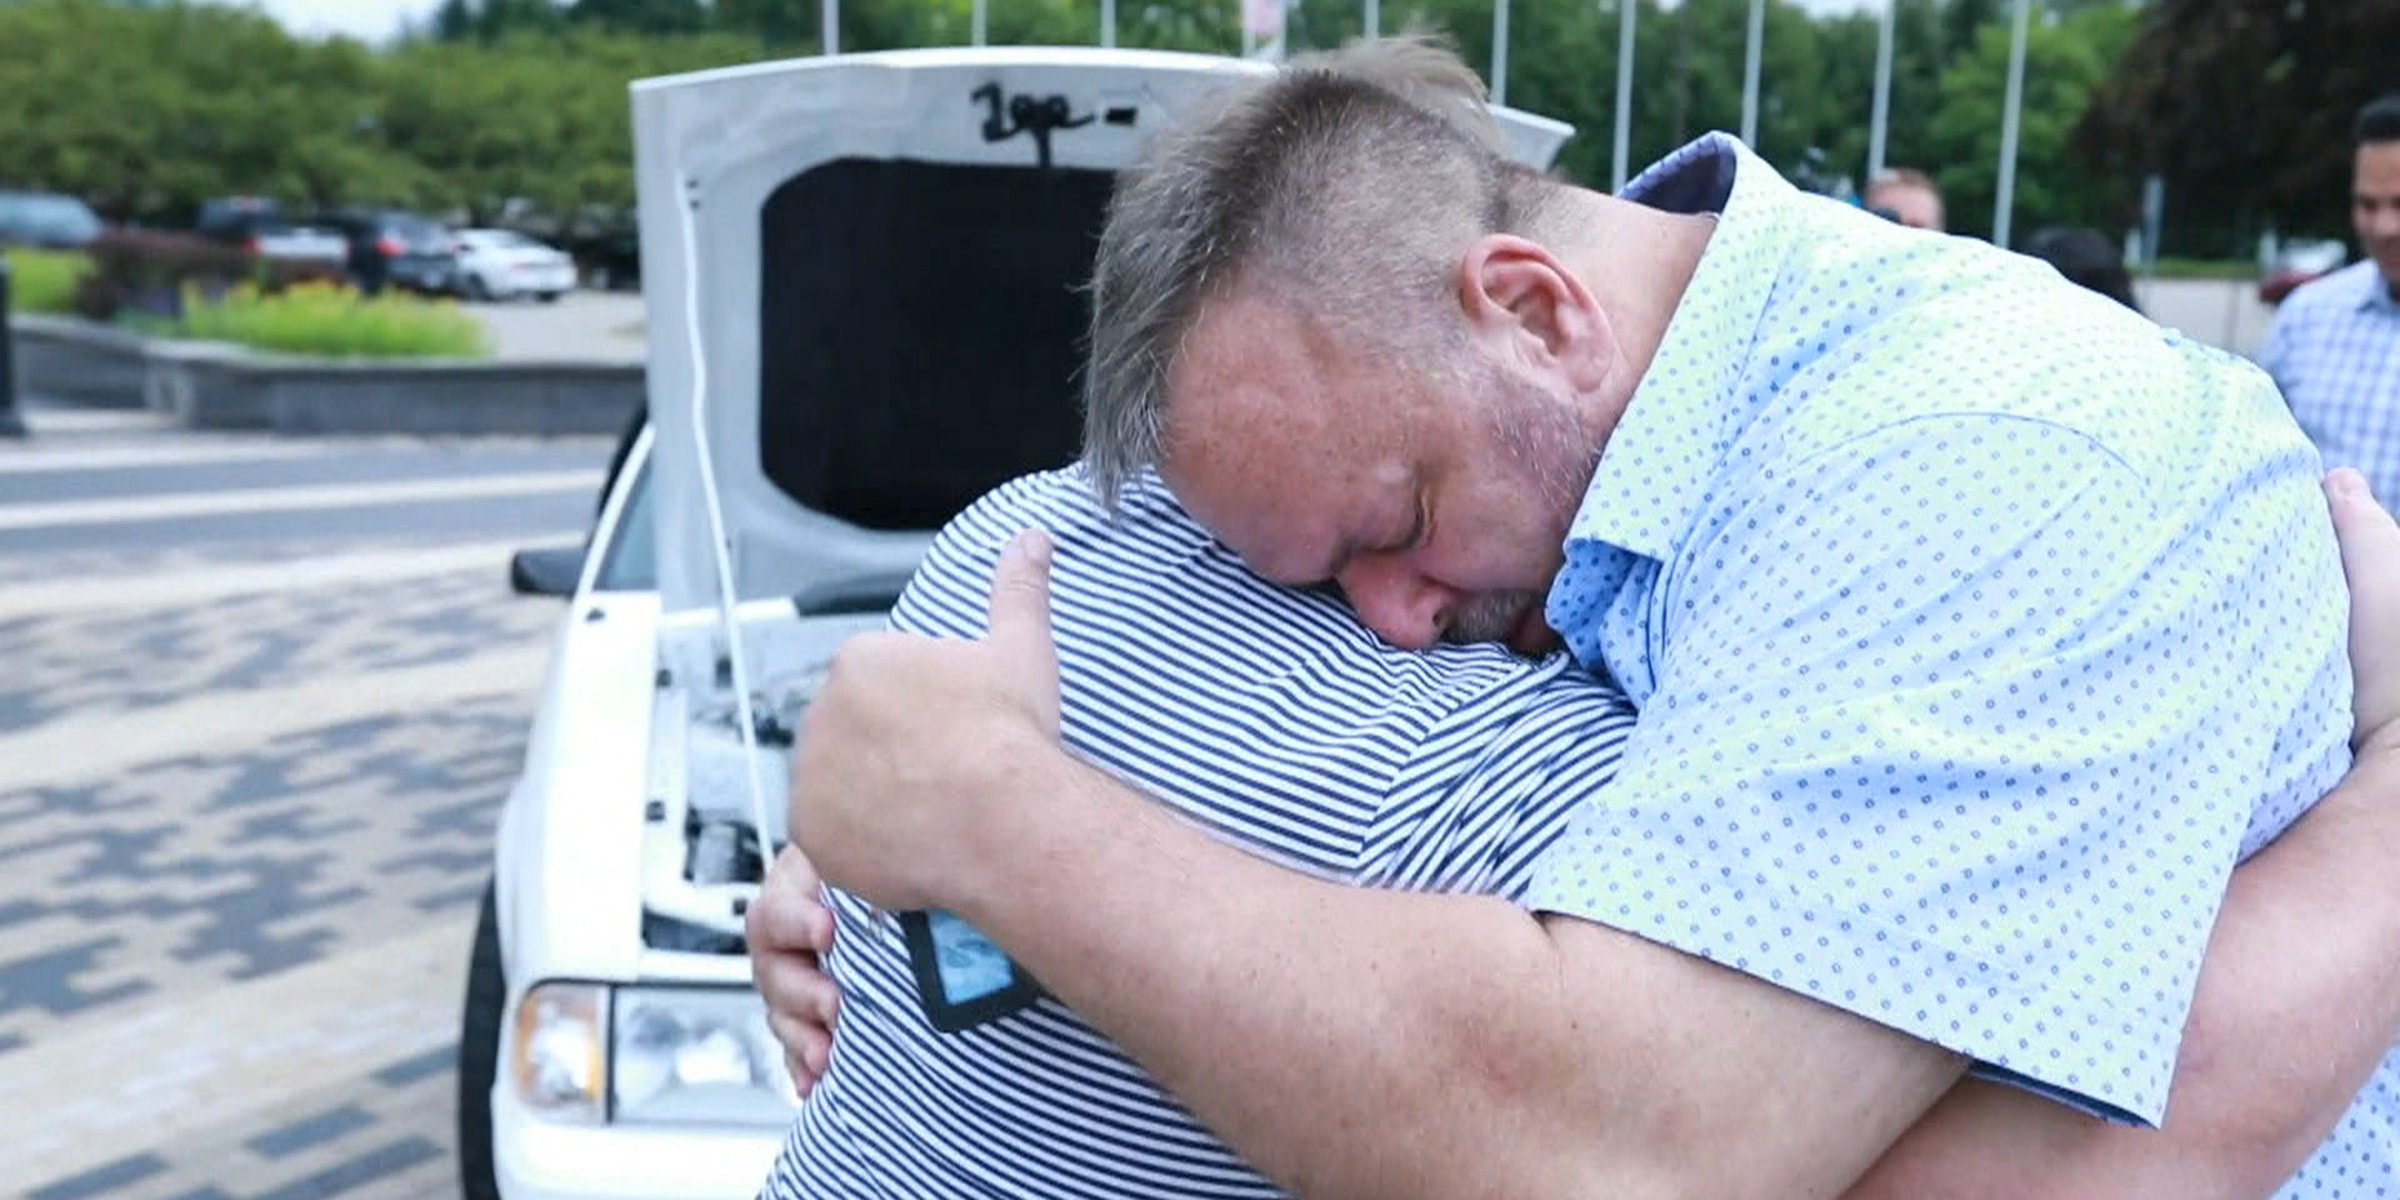 Ford restores beloved Mustang for dad who sold it to pay for wife's medical bills